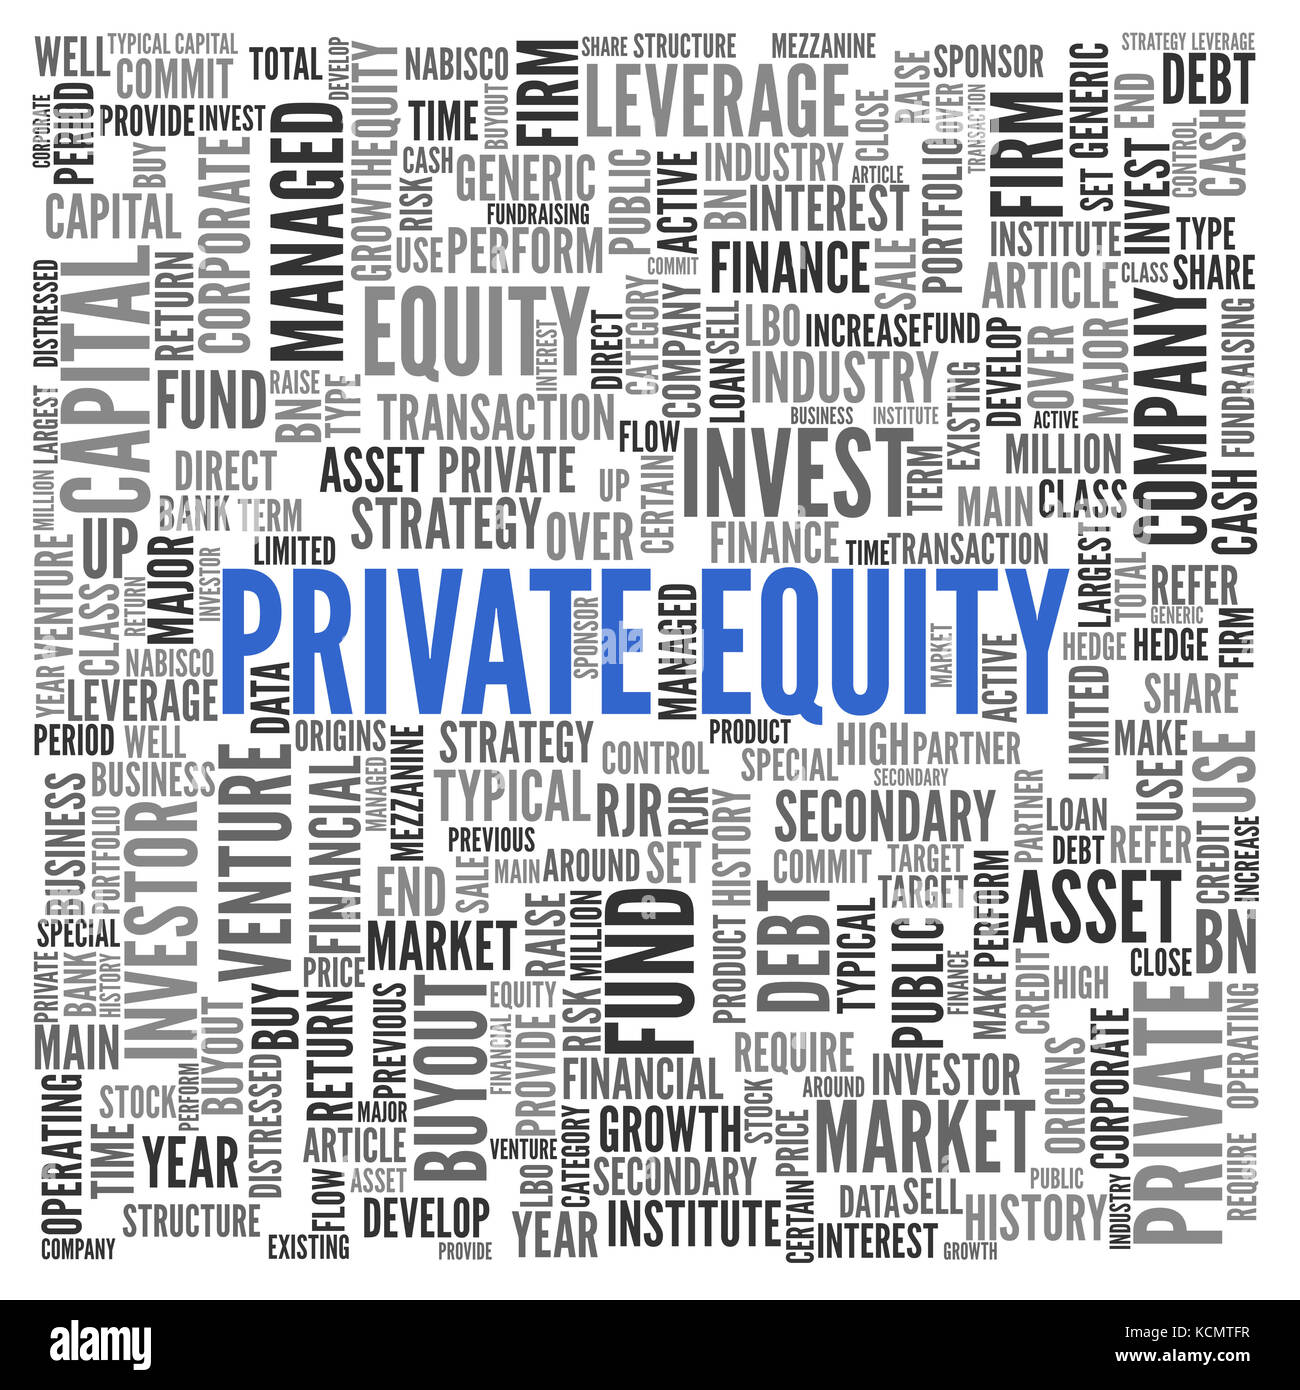 Private Equity financial asset concept with a word cloud of associated tags in random orientation in a full frame - Stock Image